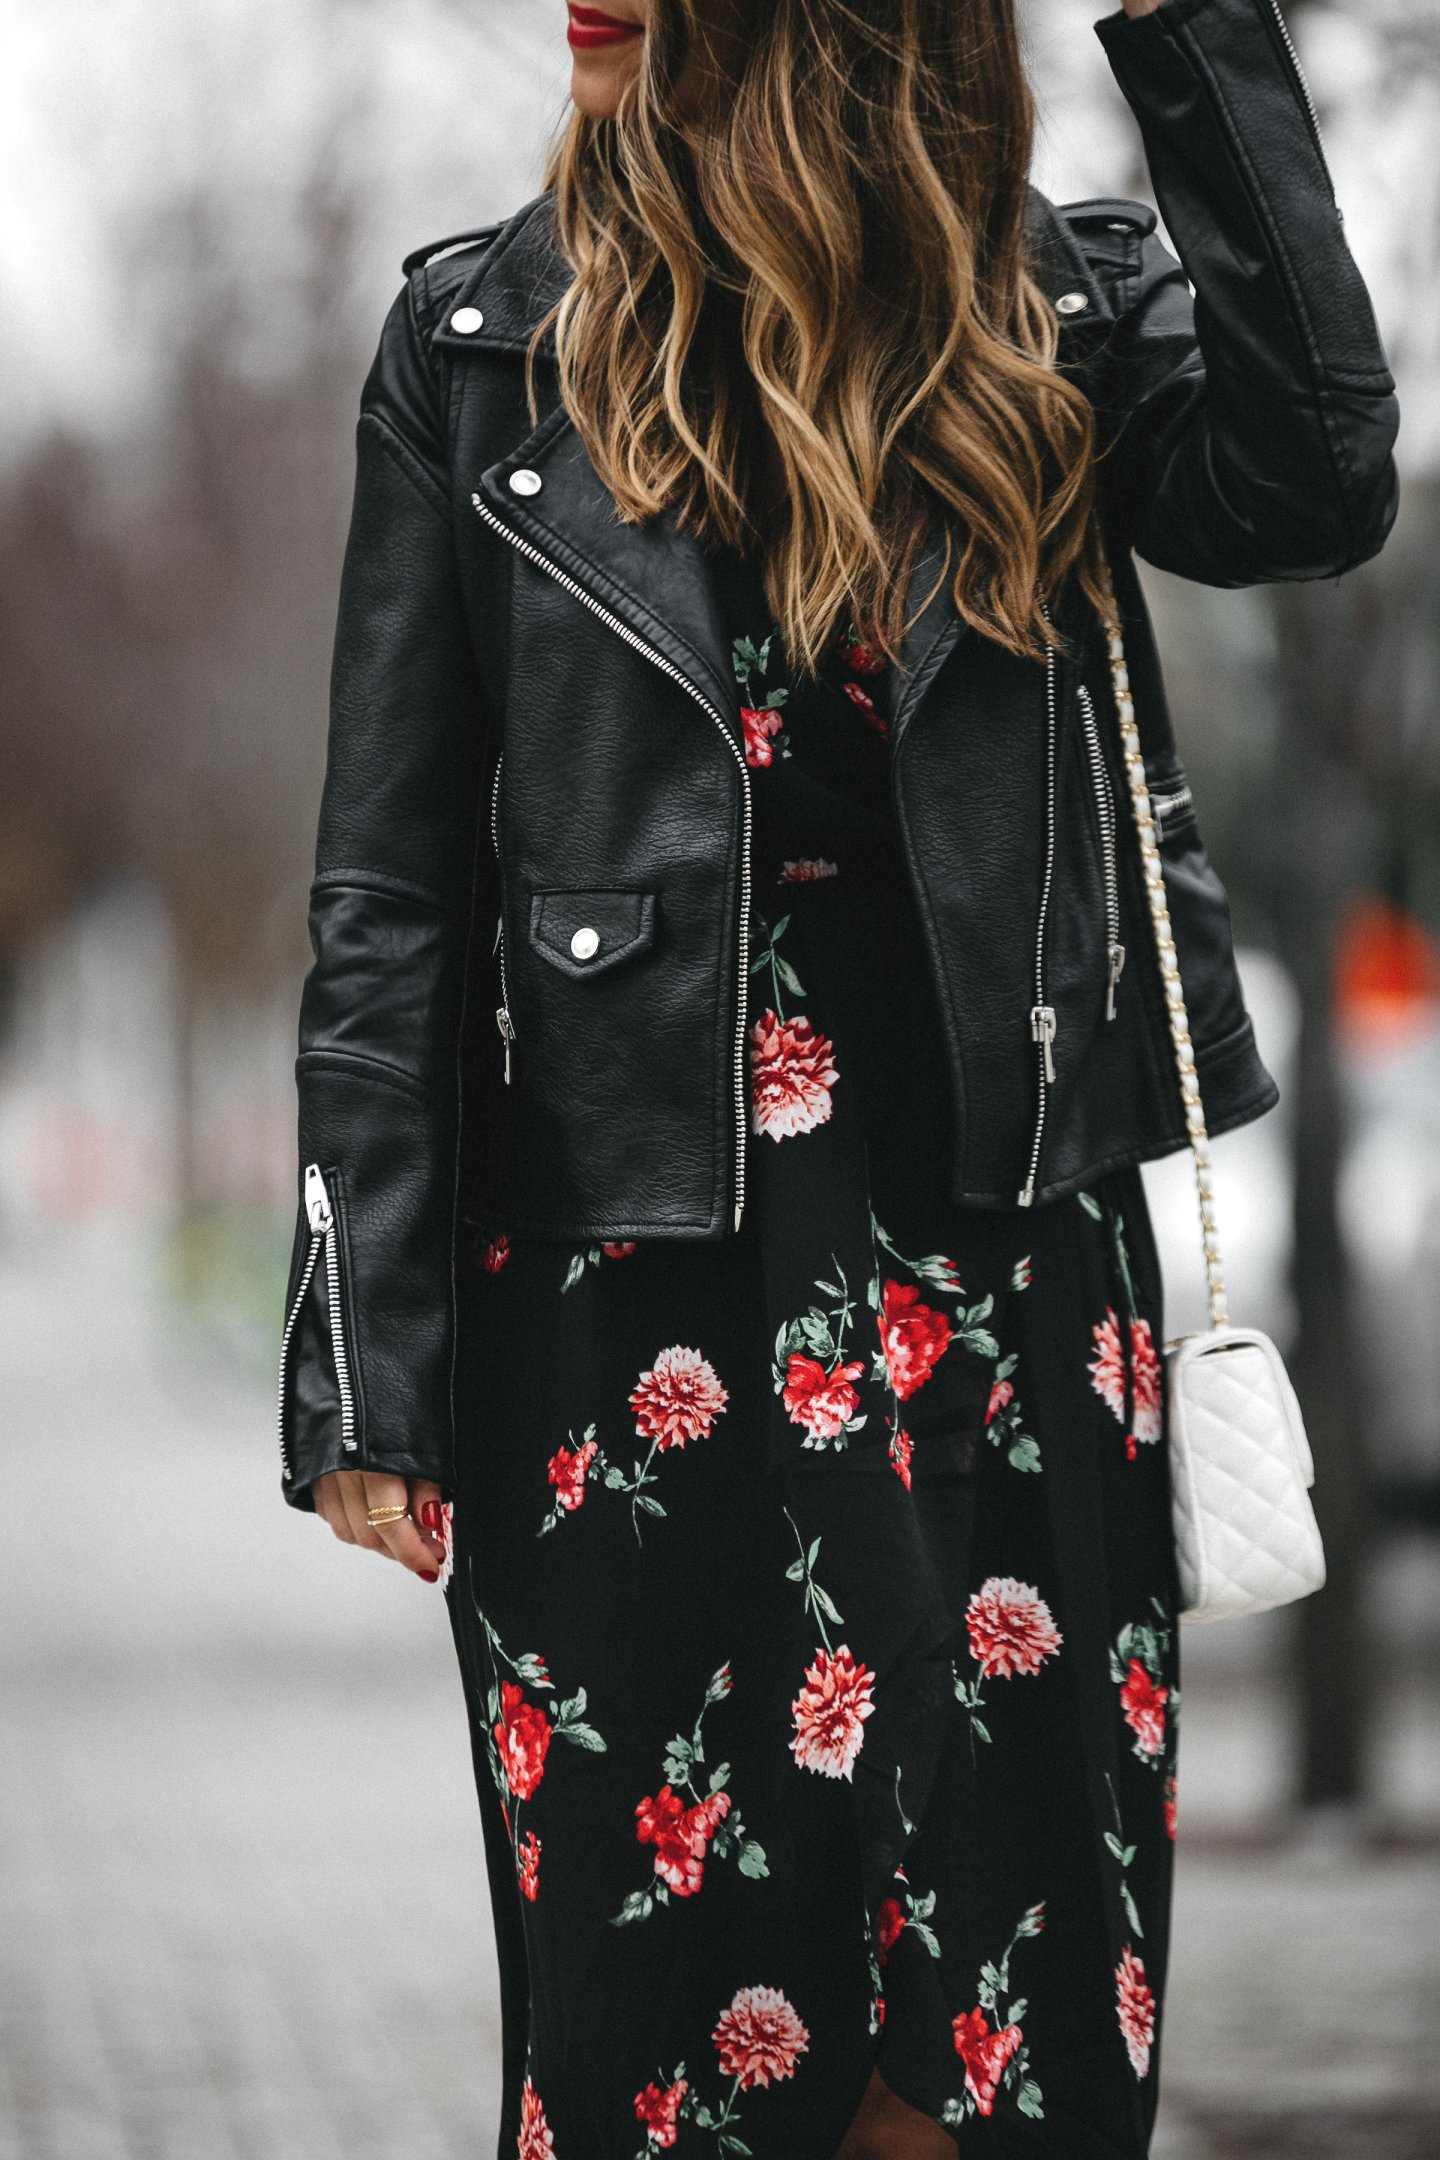 edgy Valentine's Day outfit